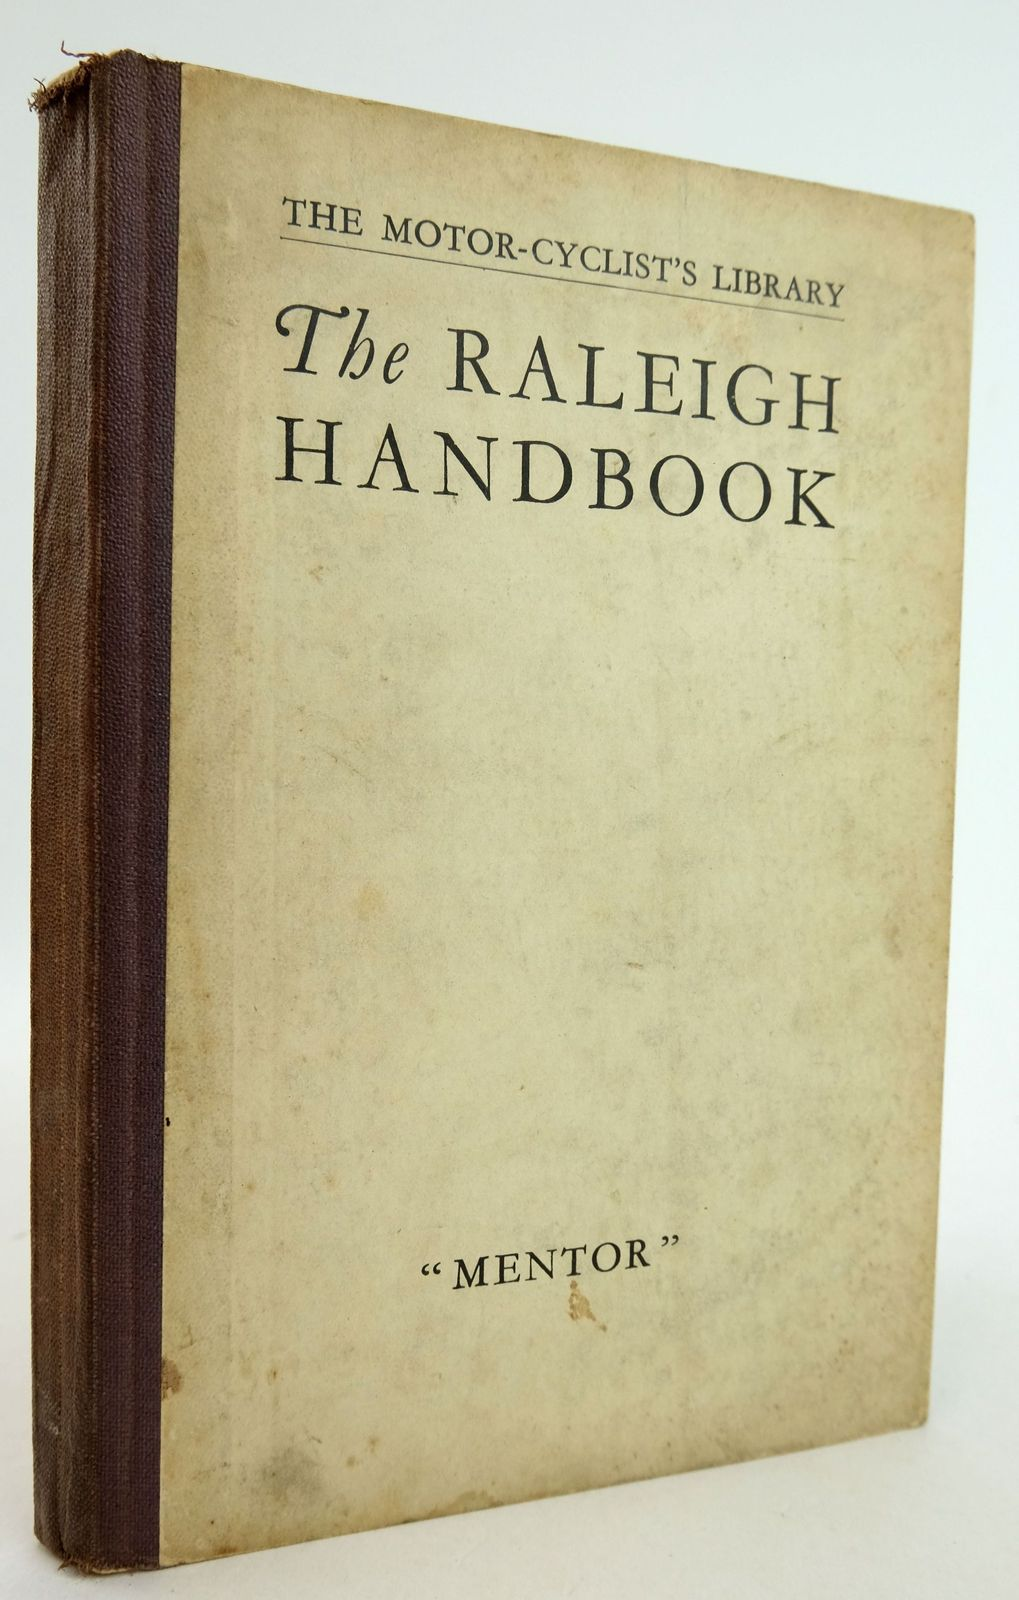 Photo of THE RALEIGH HANDBOOK (THE MOTOR-CYCLIST'S LIBRARY)- Stock Number: 1819463